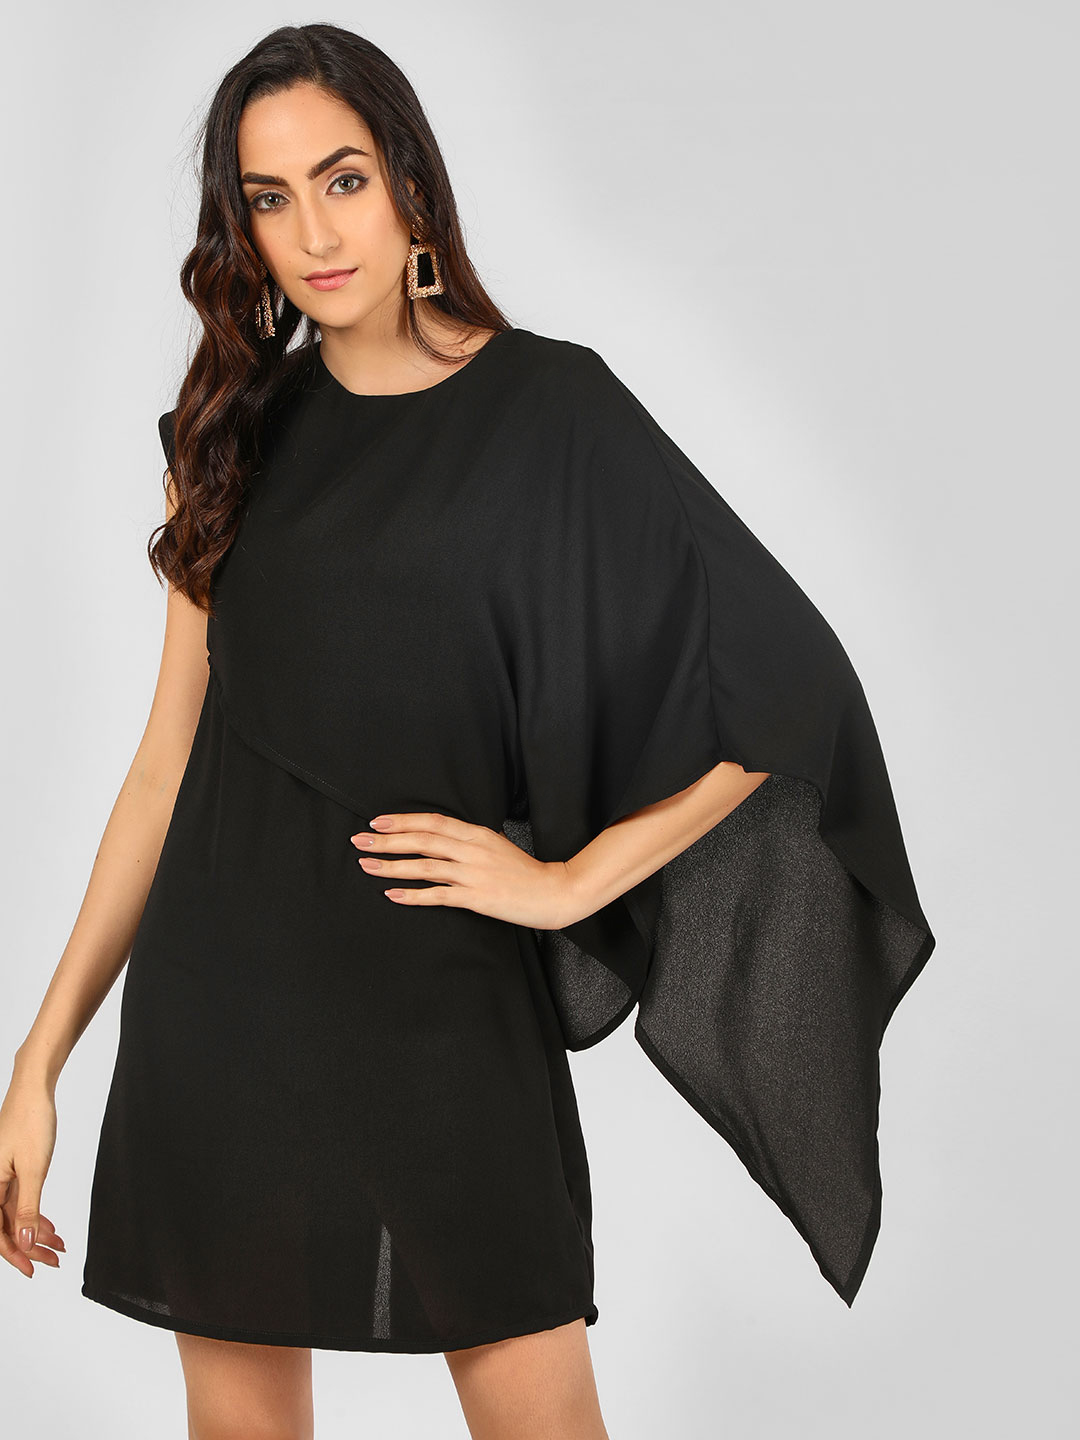 Oliv Black Asymmetric Cape Sleeve Shift Dress 1